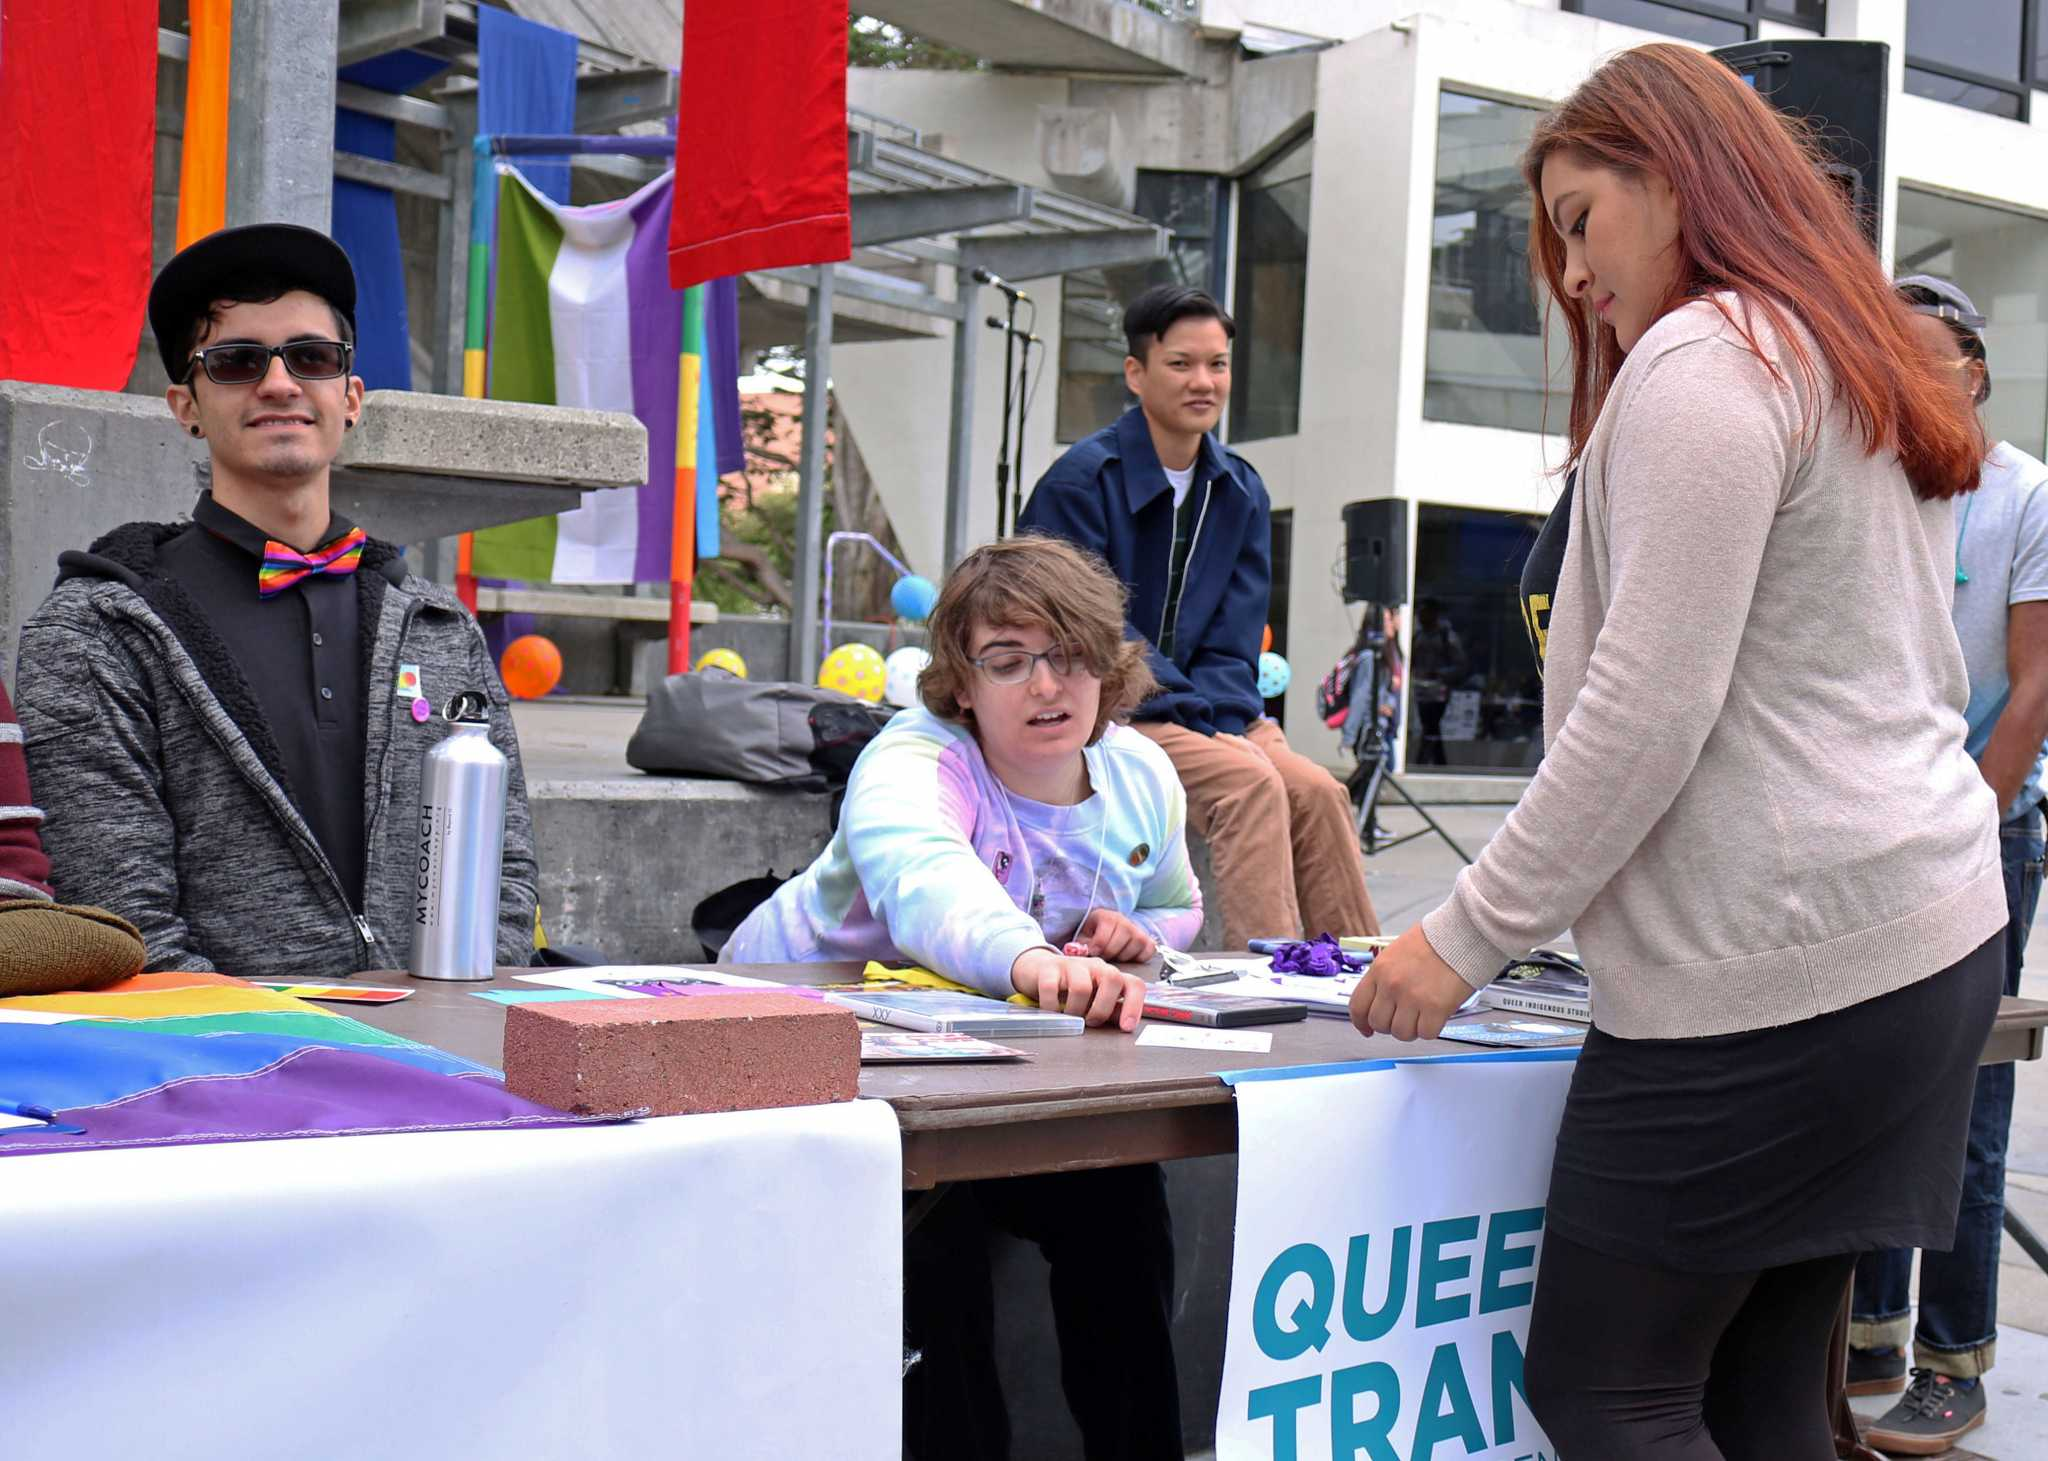 SF State's coming out day celebrates importance of community